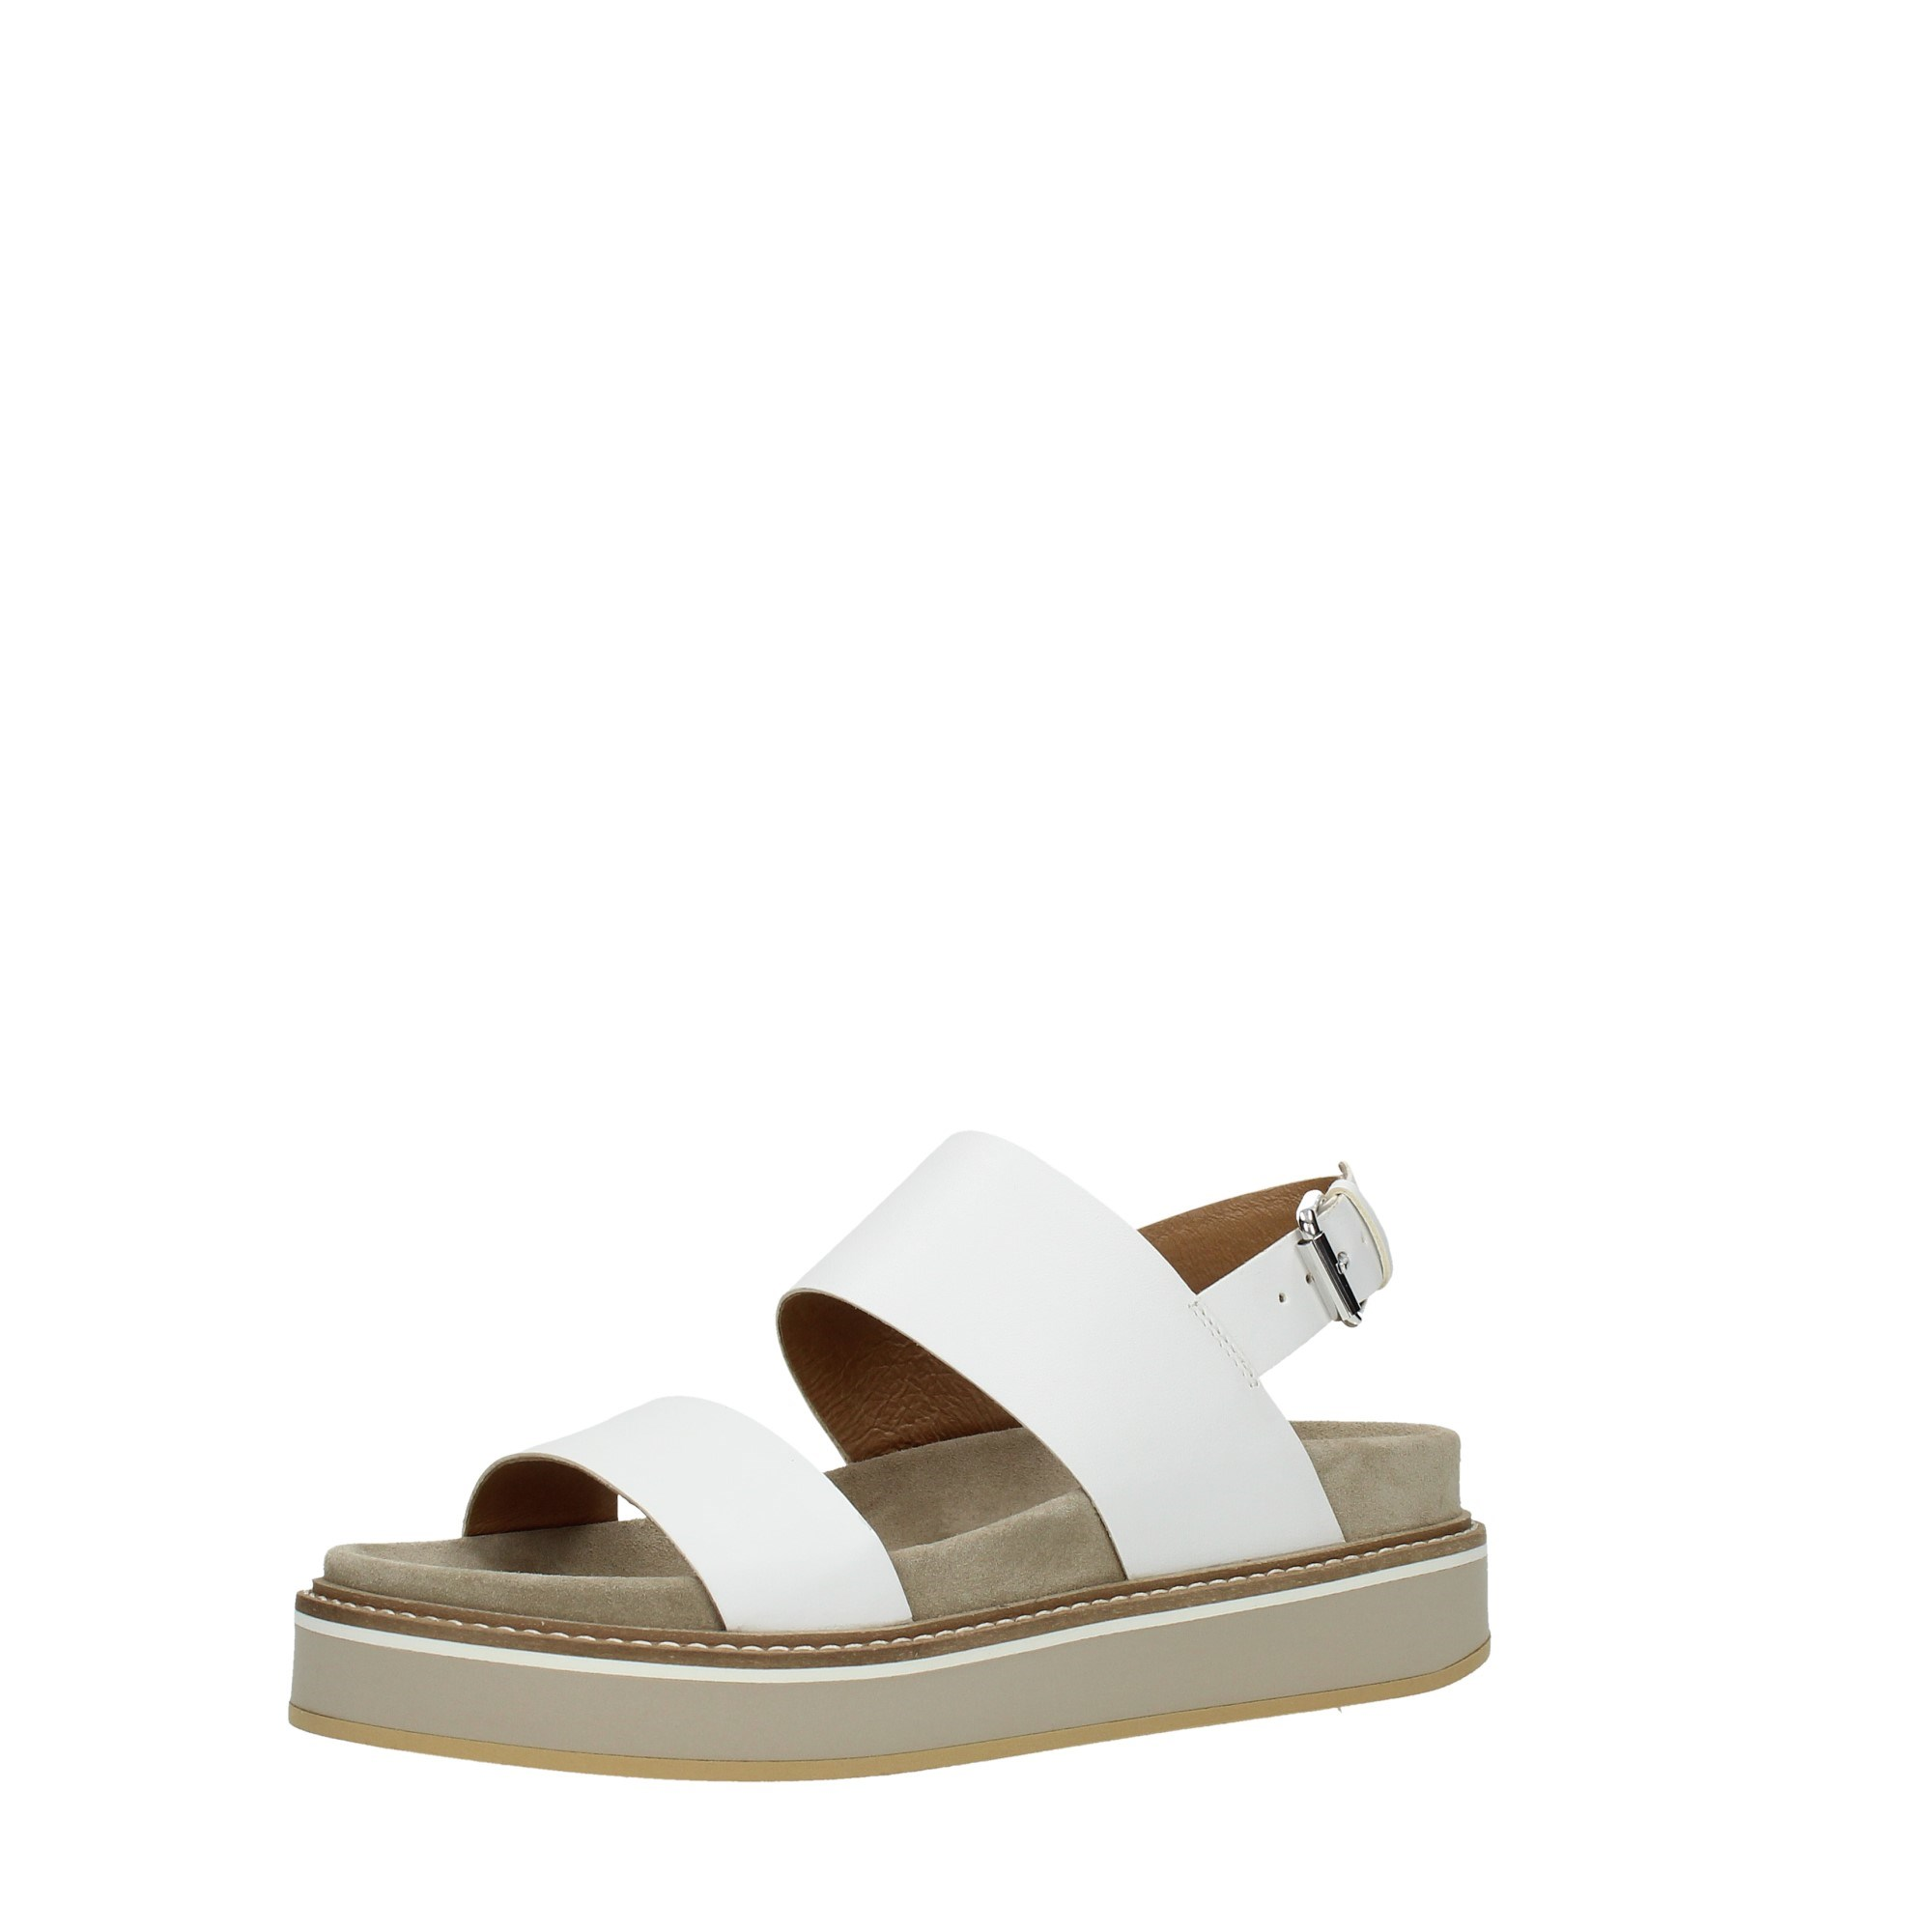 Janet Sport Shoes Women Wedge Sandals White 45754